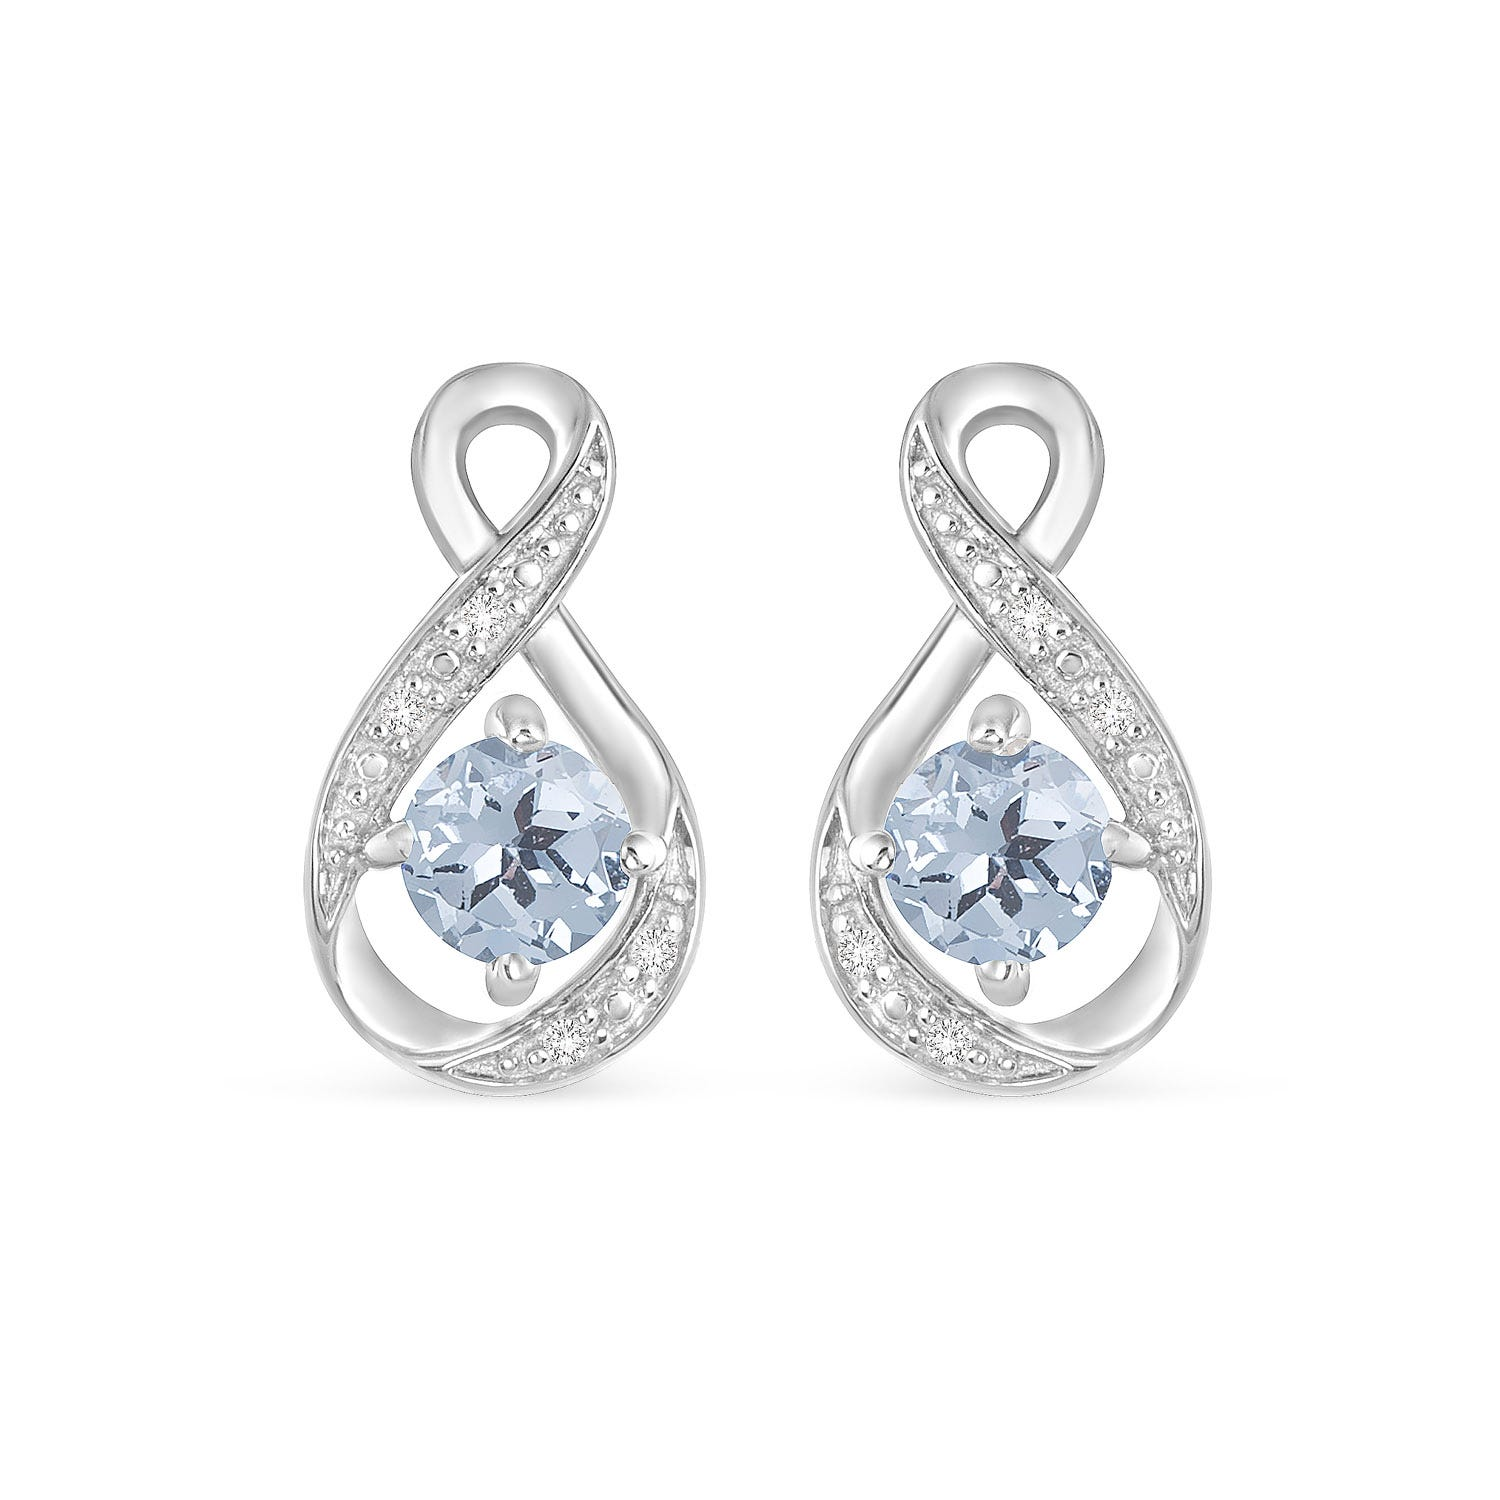 Sterling Silver and Cubic Zirconia March Birthstone Stud Earrings